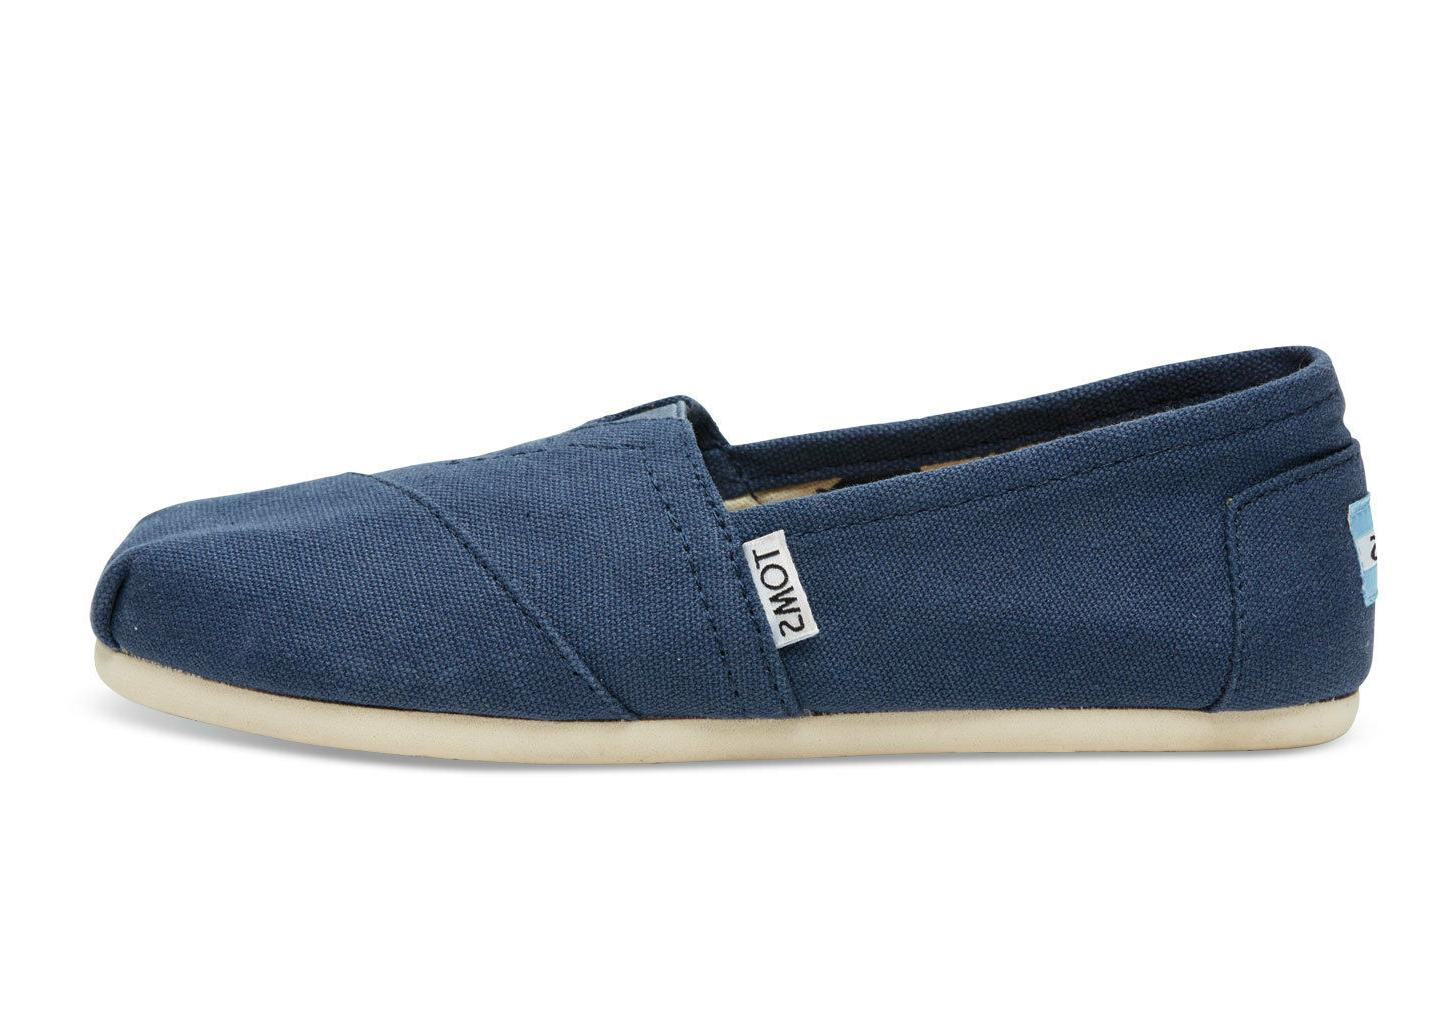 Men's Toms 'Classic' Canvas Slip-On, Size 9.5 M - Blue